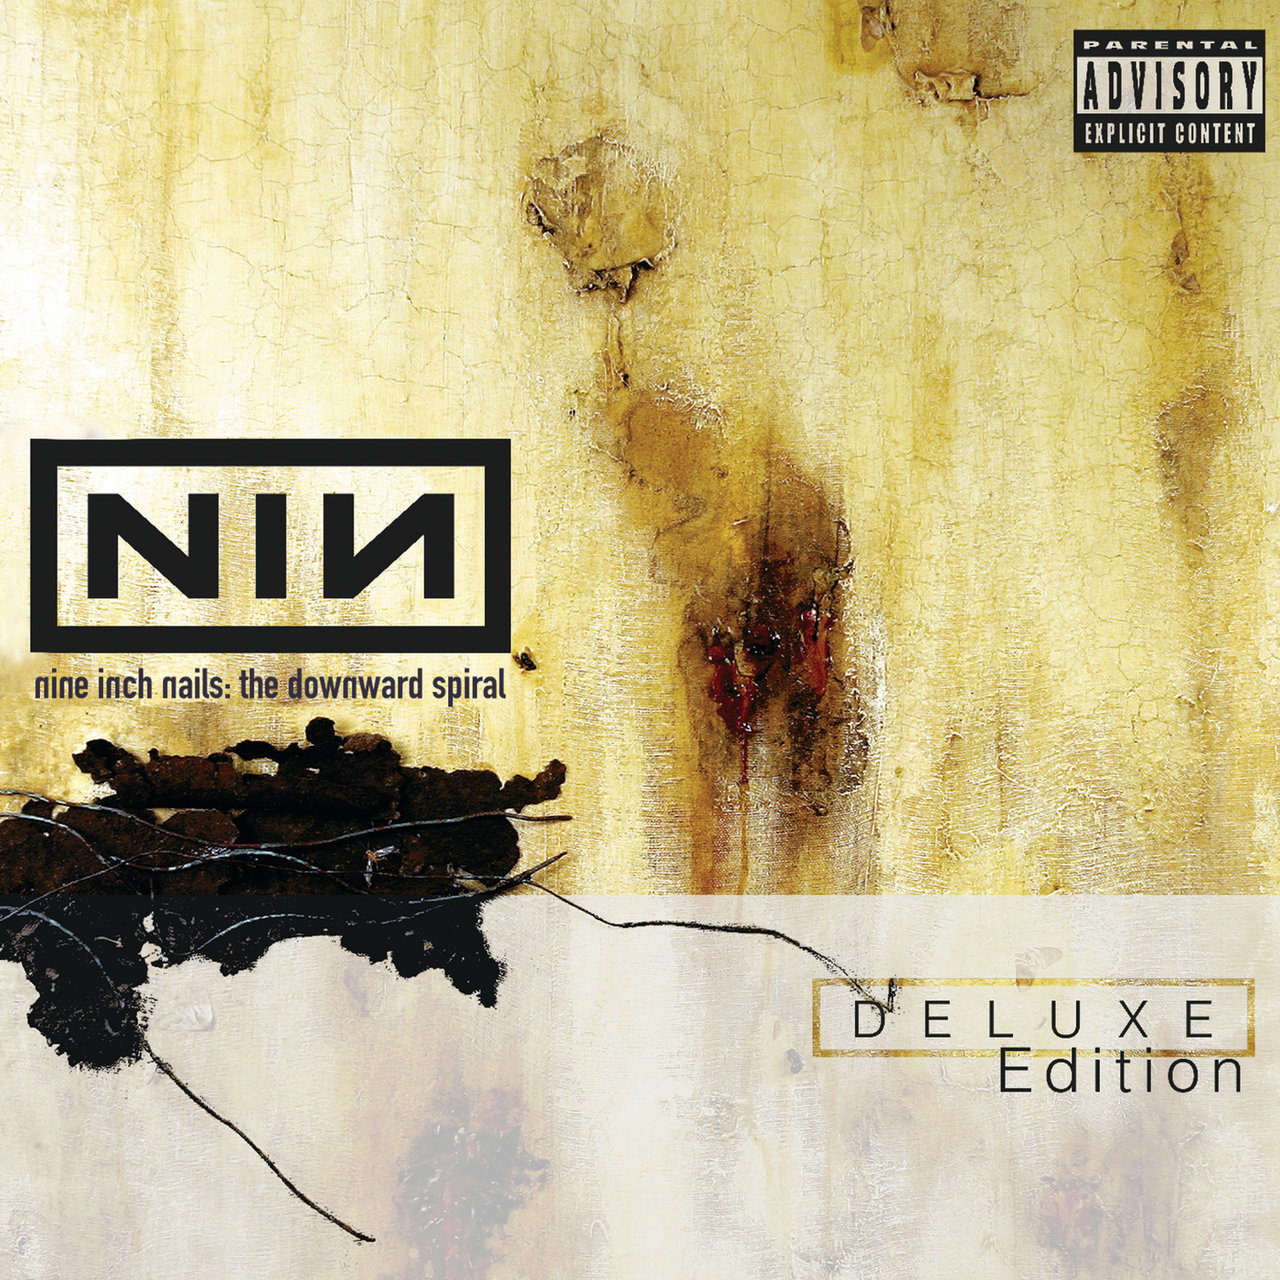 The Downward Spiral (Deluxe Edition) / Nine Inch Nails TIDAL